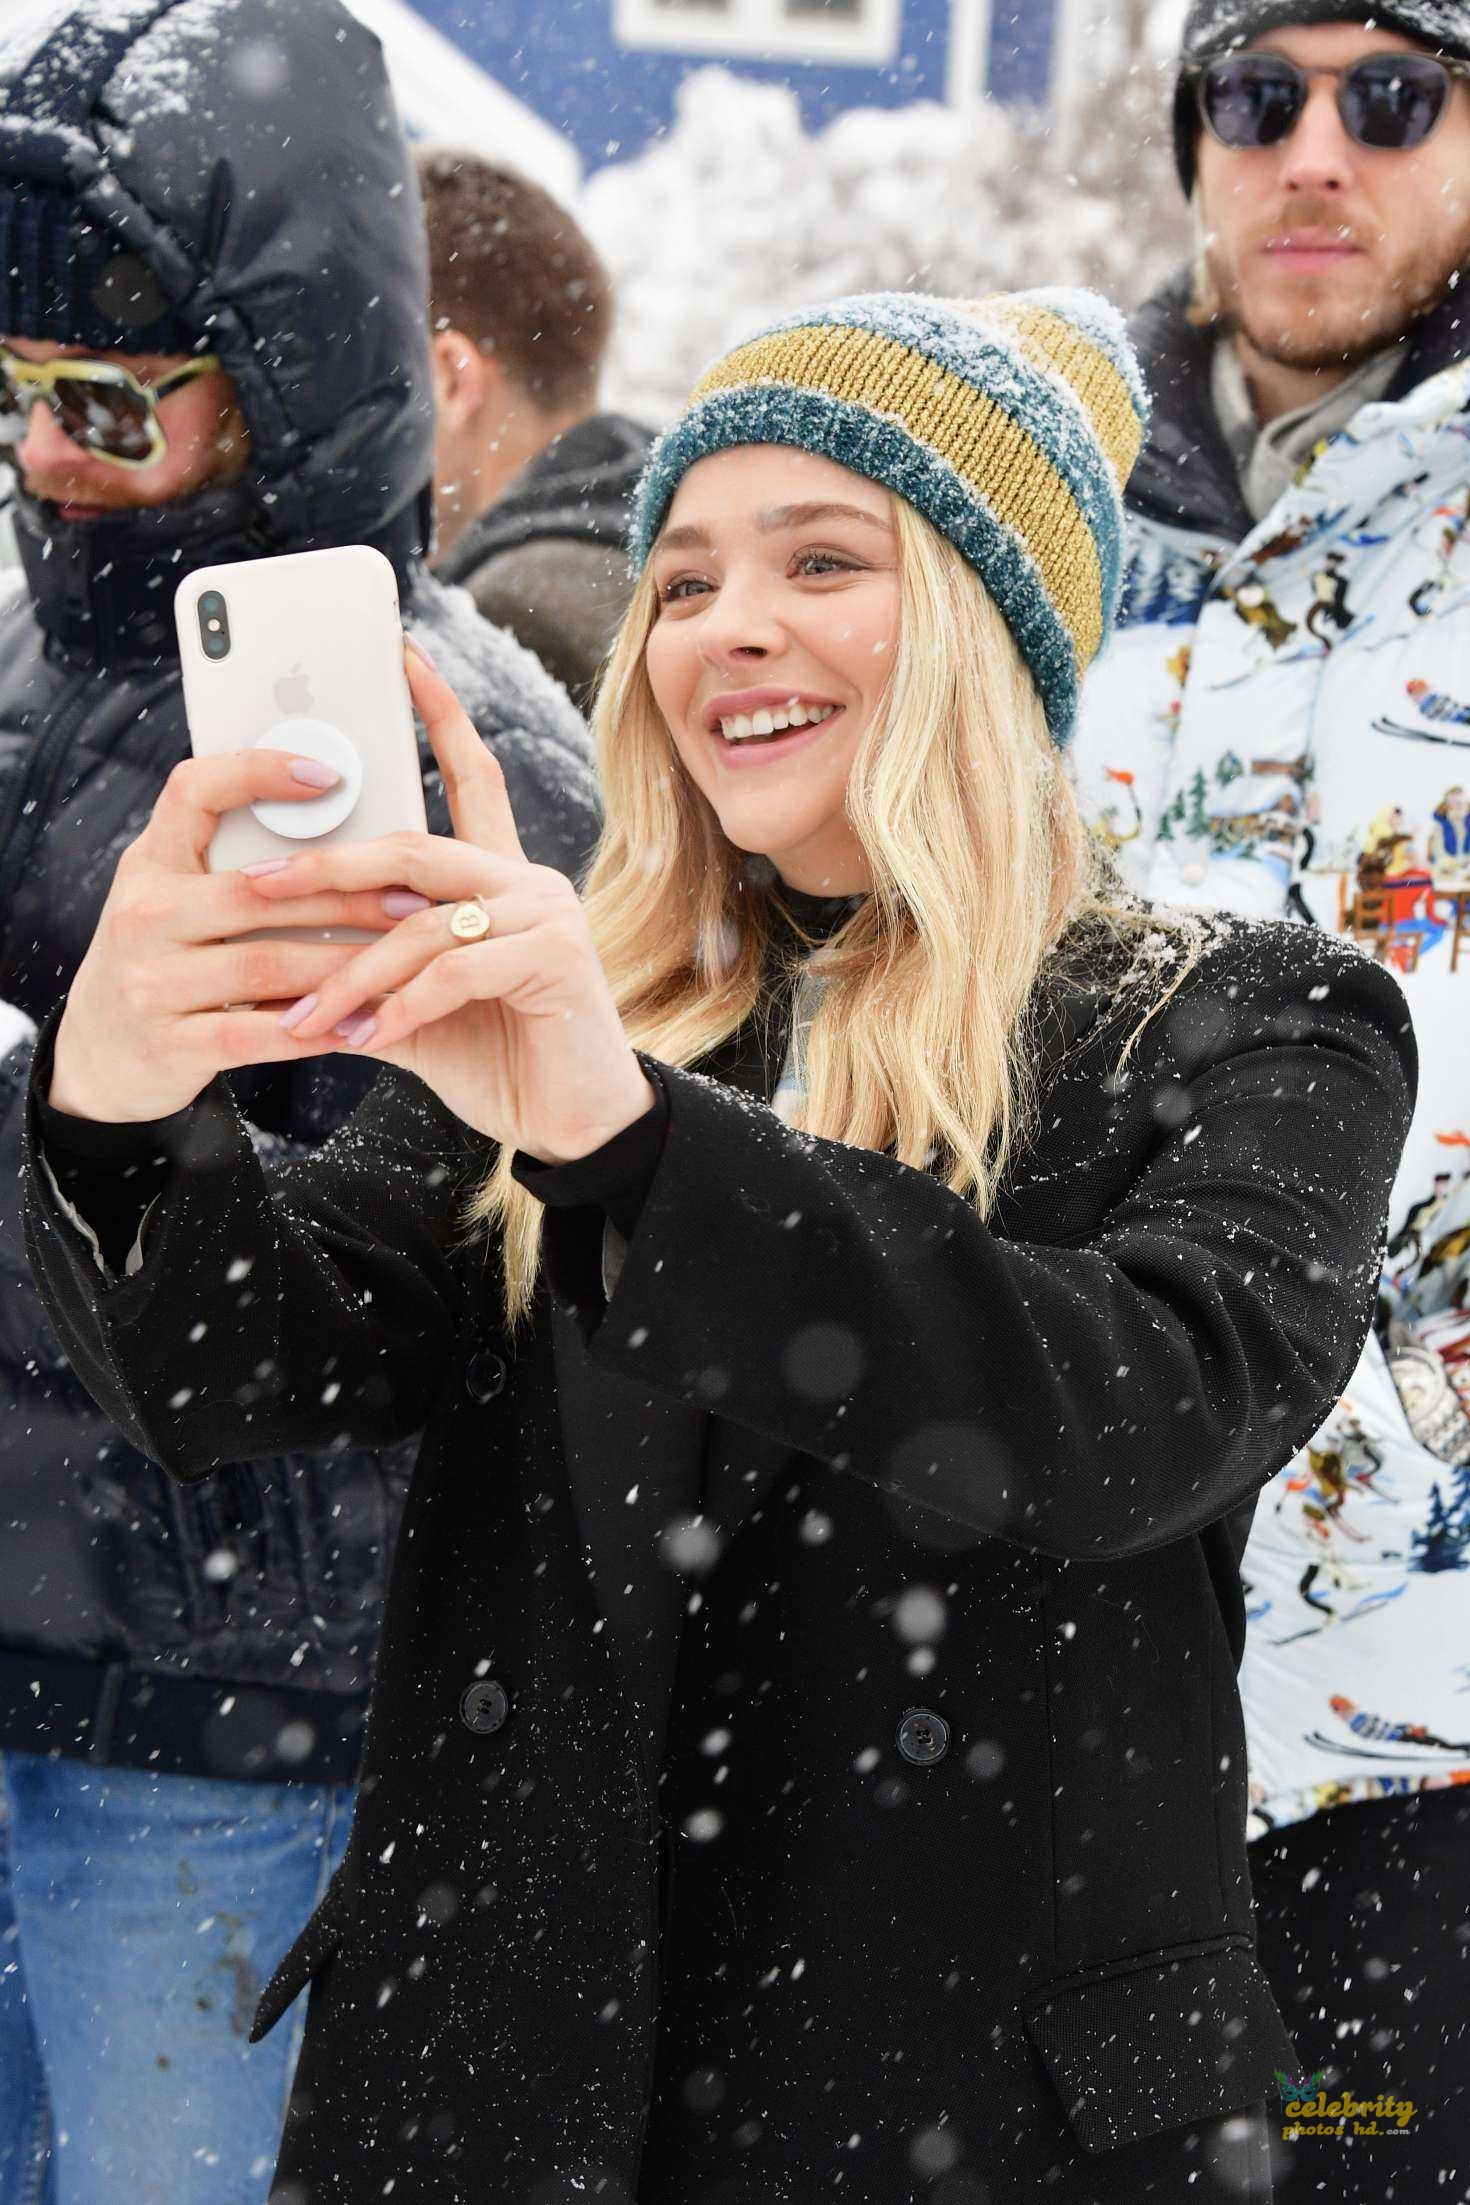 Chloe Moretz at Respect Rally while its Snowing in Park City (1)